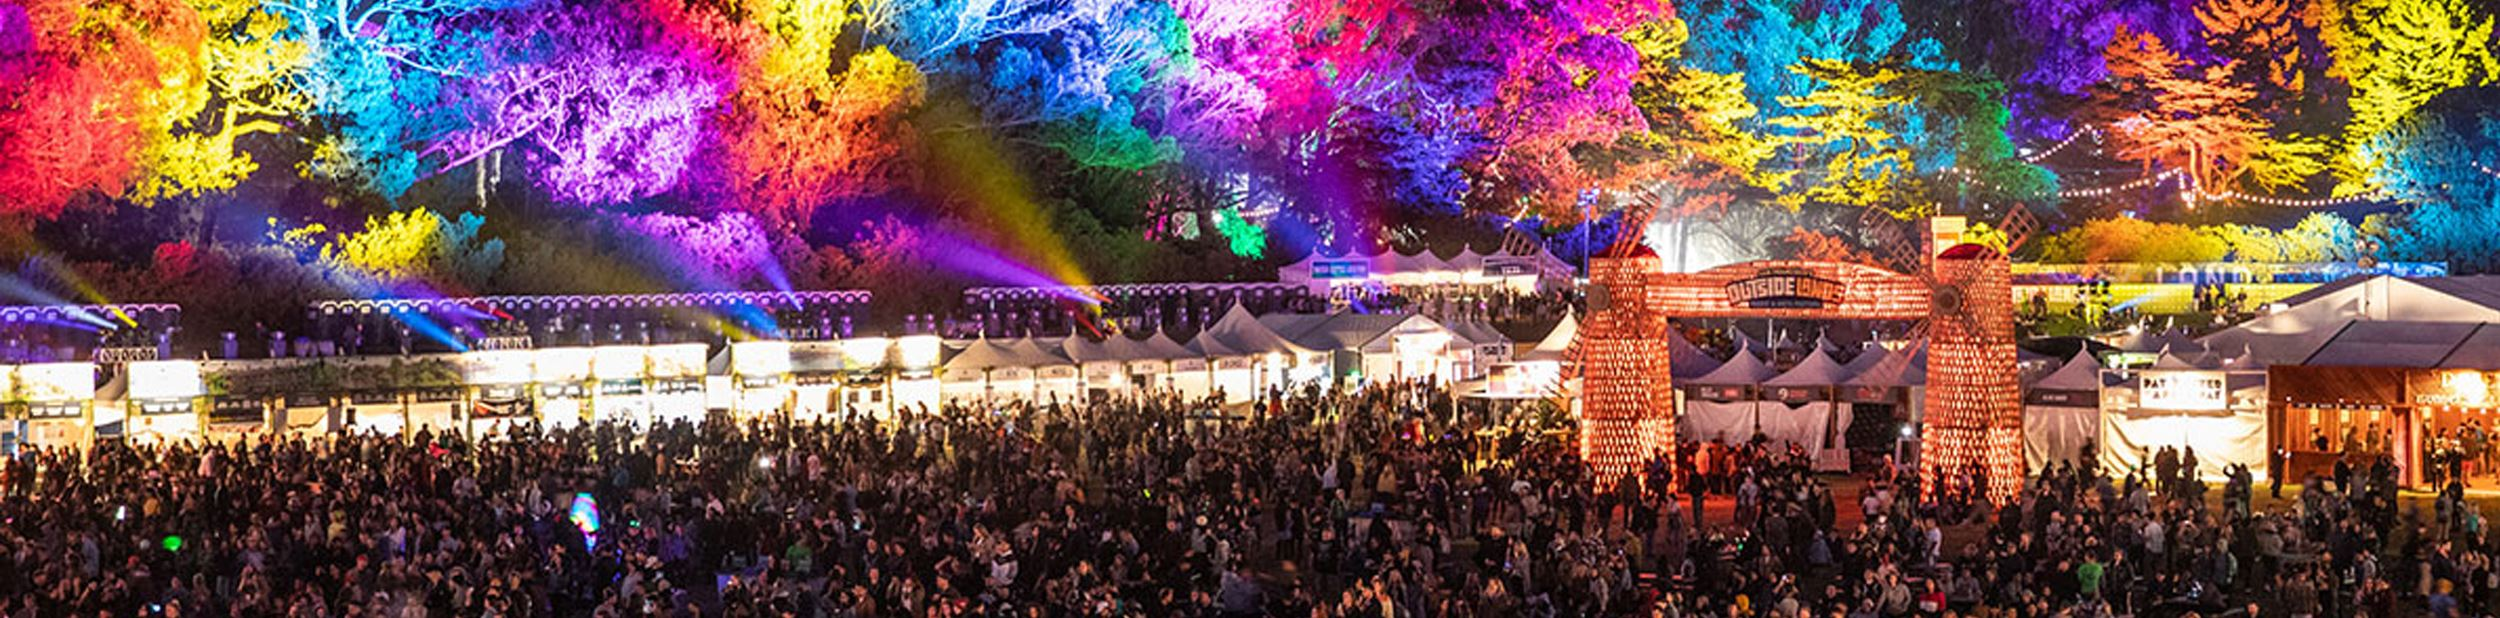 Crowded festival with colorful lights projected on the trees